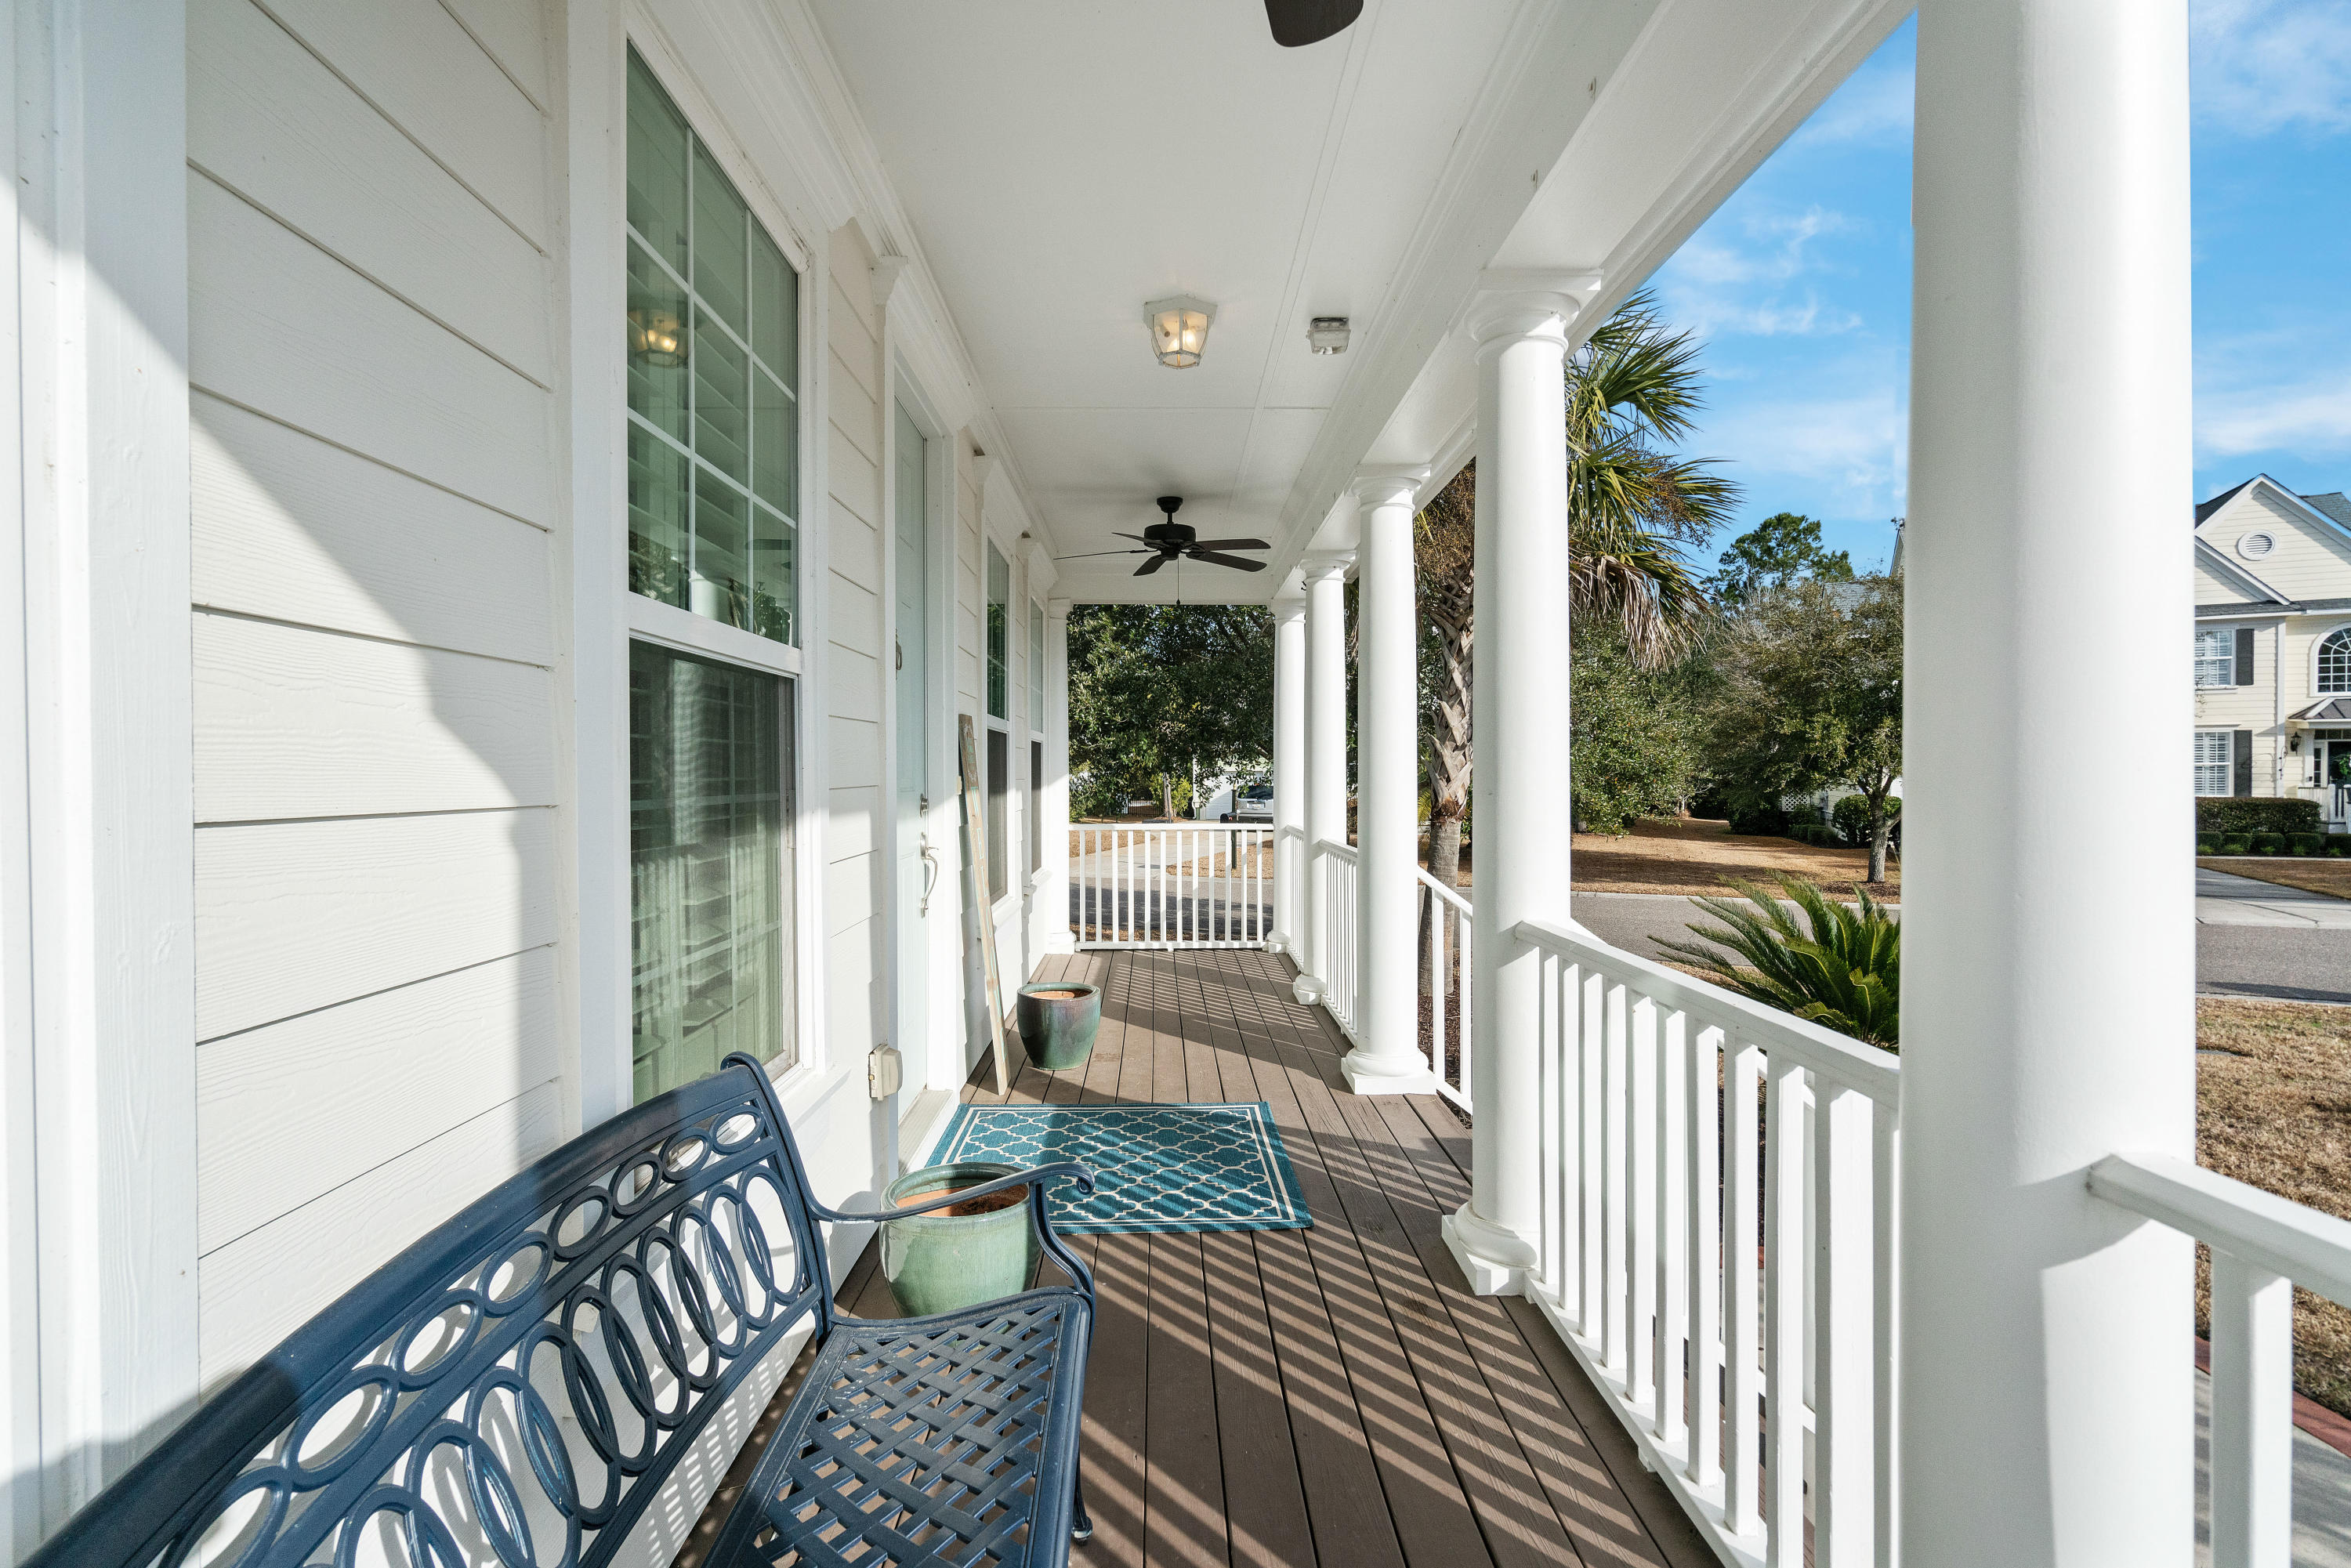 Dunes West Homes For Sale - 1600 Willowick, Mount Pleasant, SC - 33